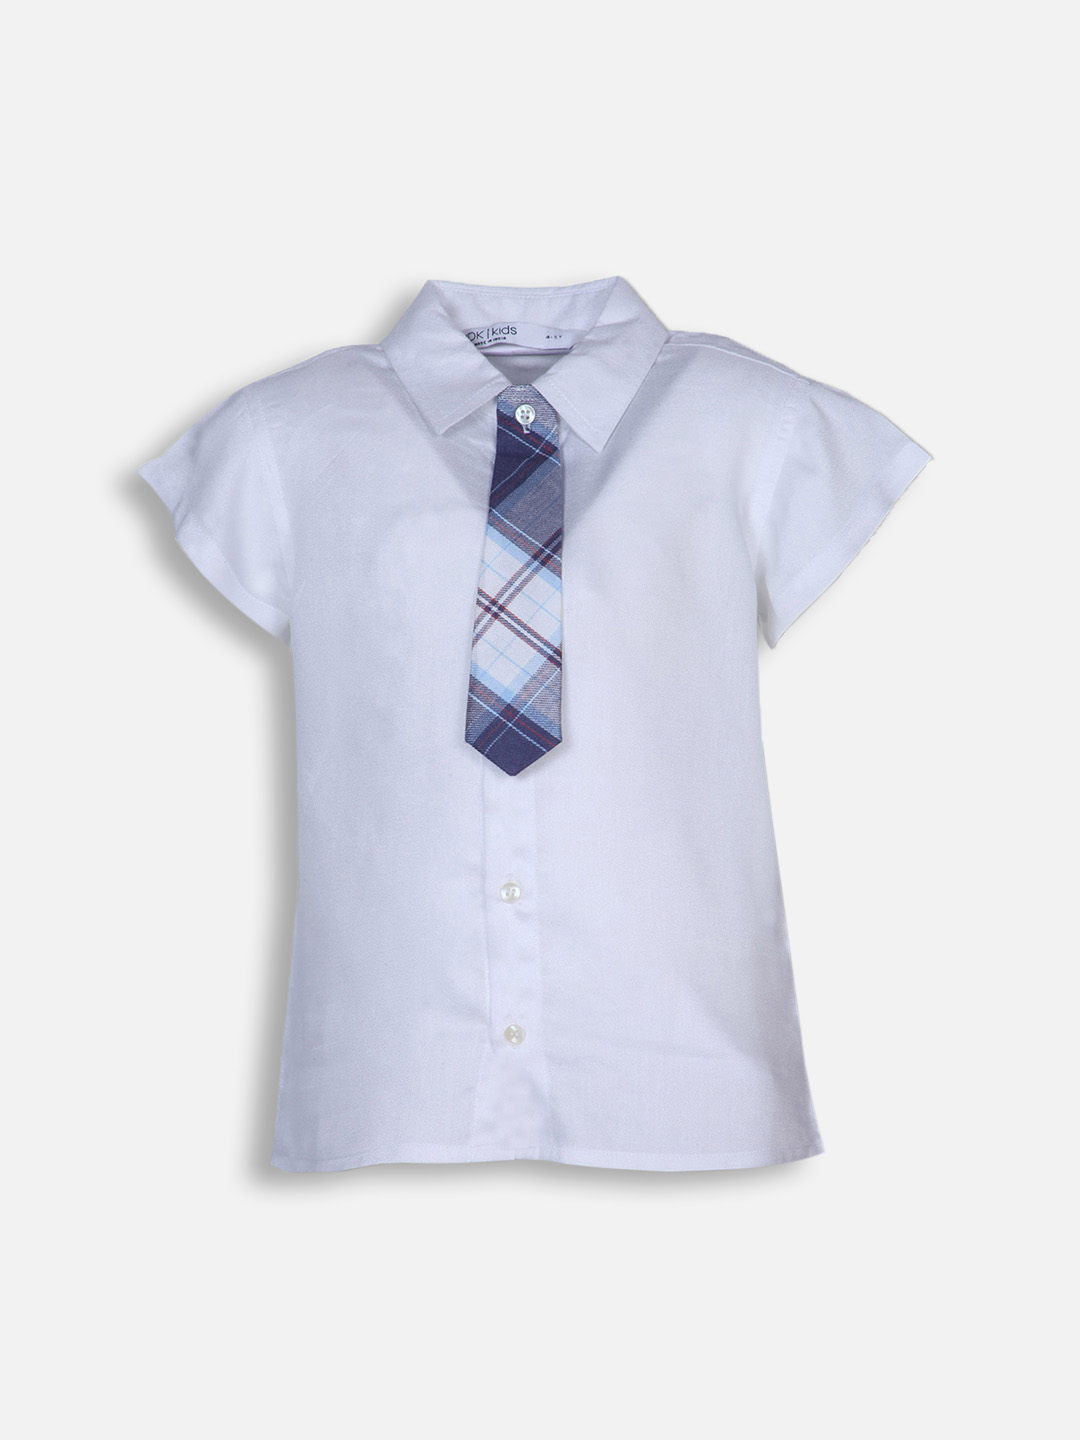 Boys White Shirt With Tie